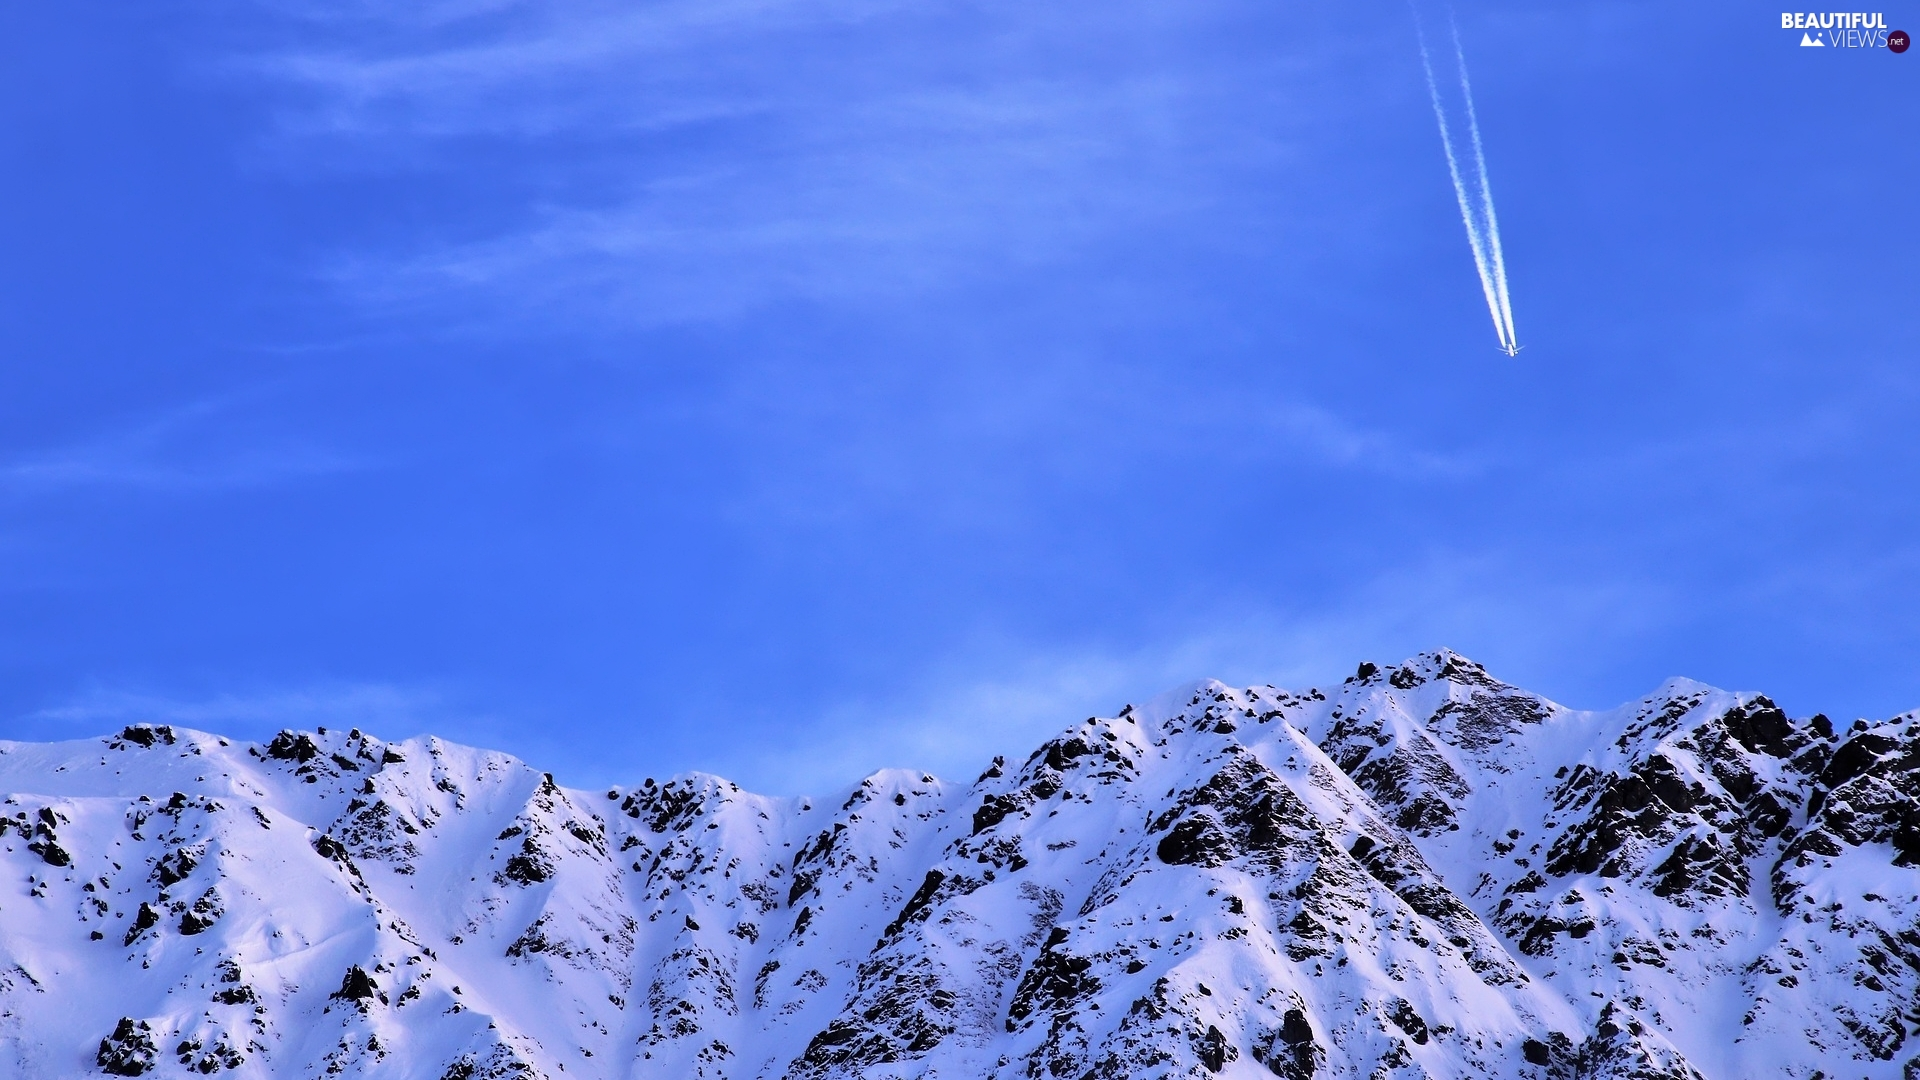 plane, Sky, winter, snow, Mountains